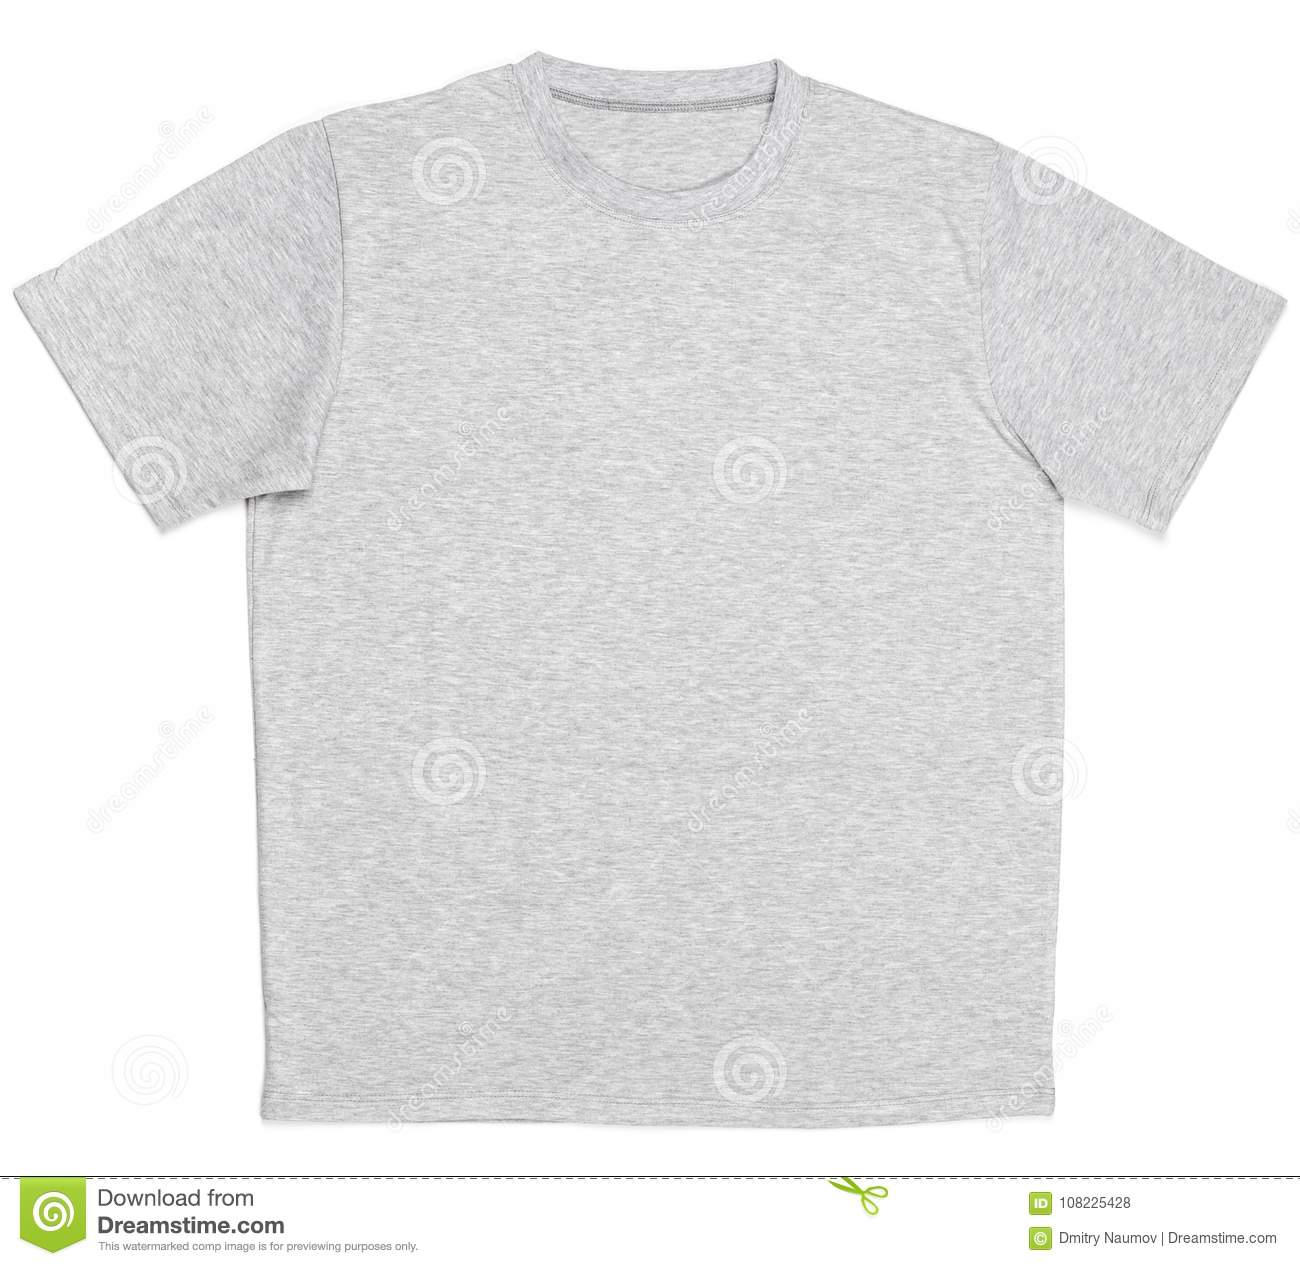 10cbc0dd0 Grey heathered shortsleeve cotton T-Shirt template isolated on a white  background